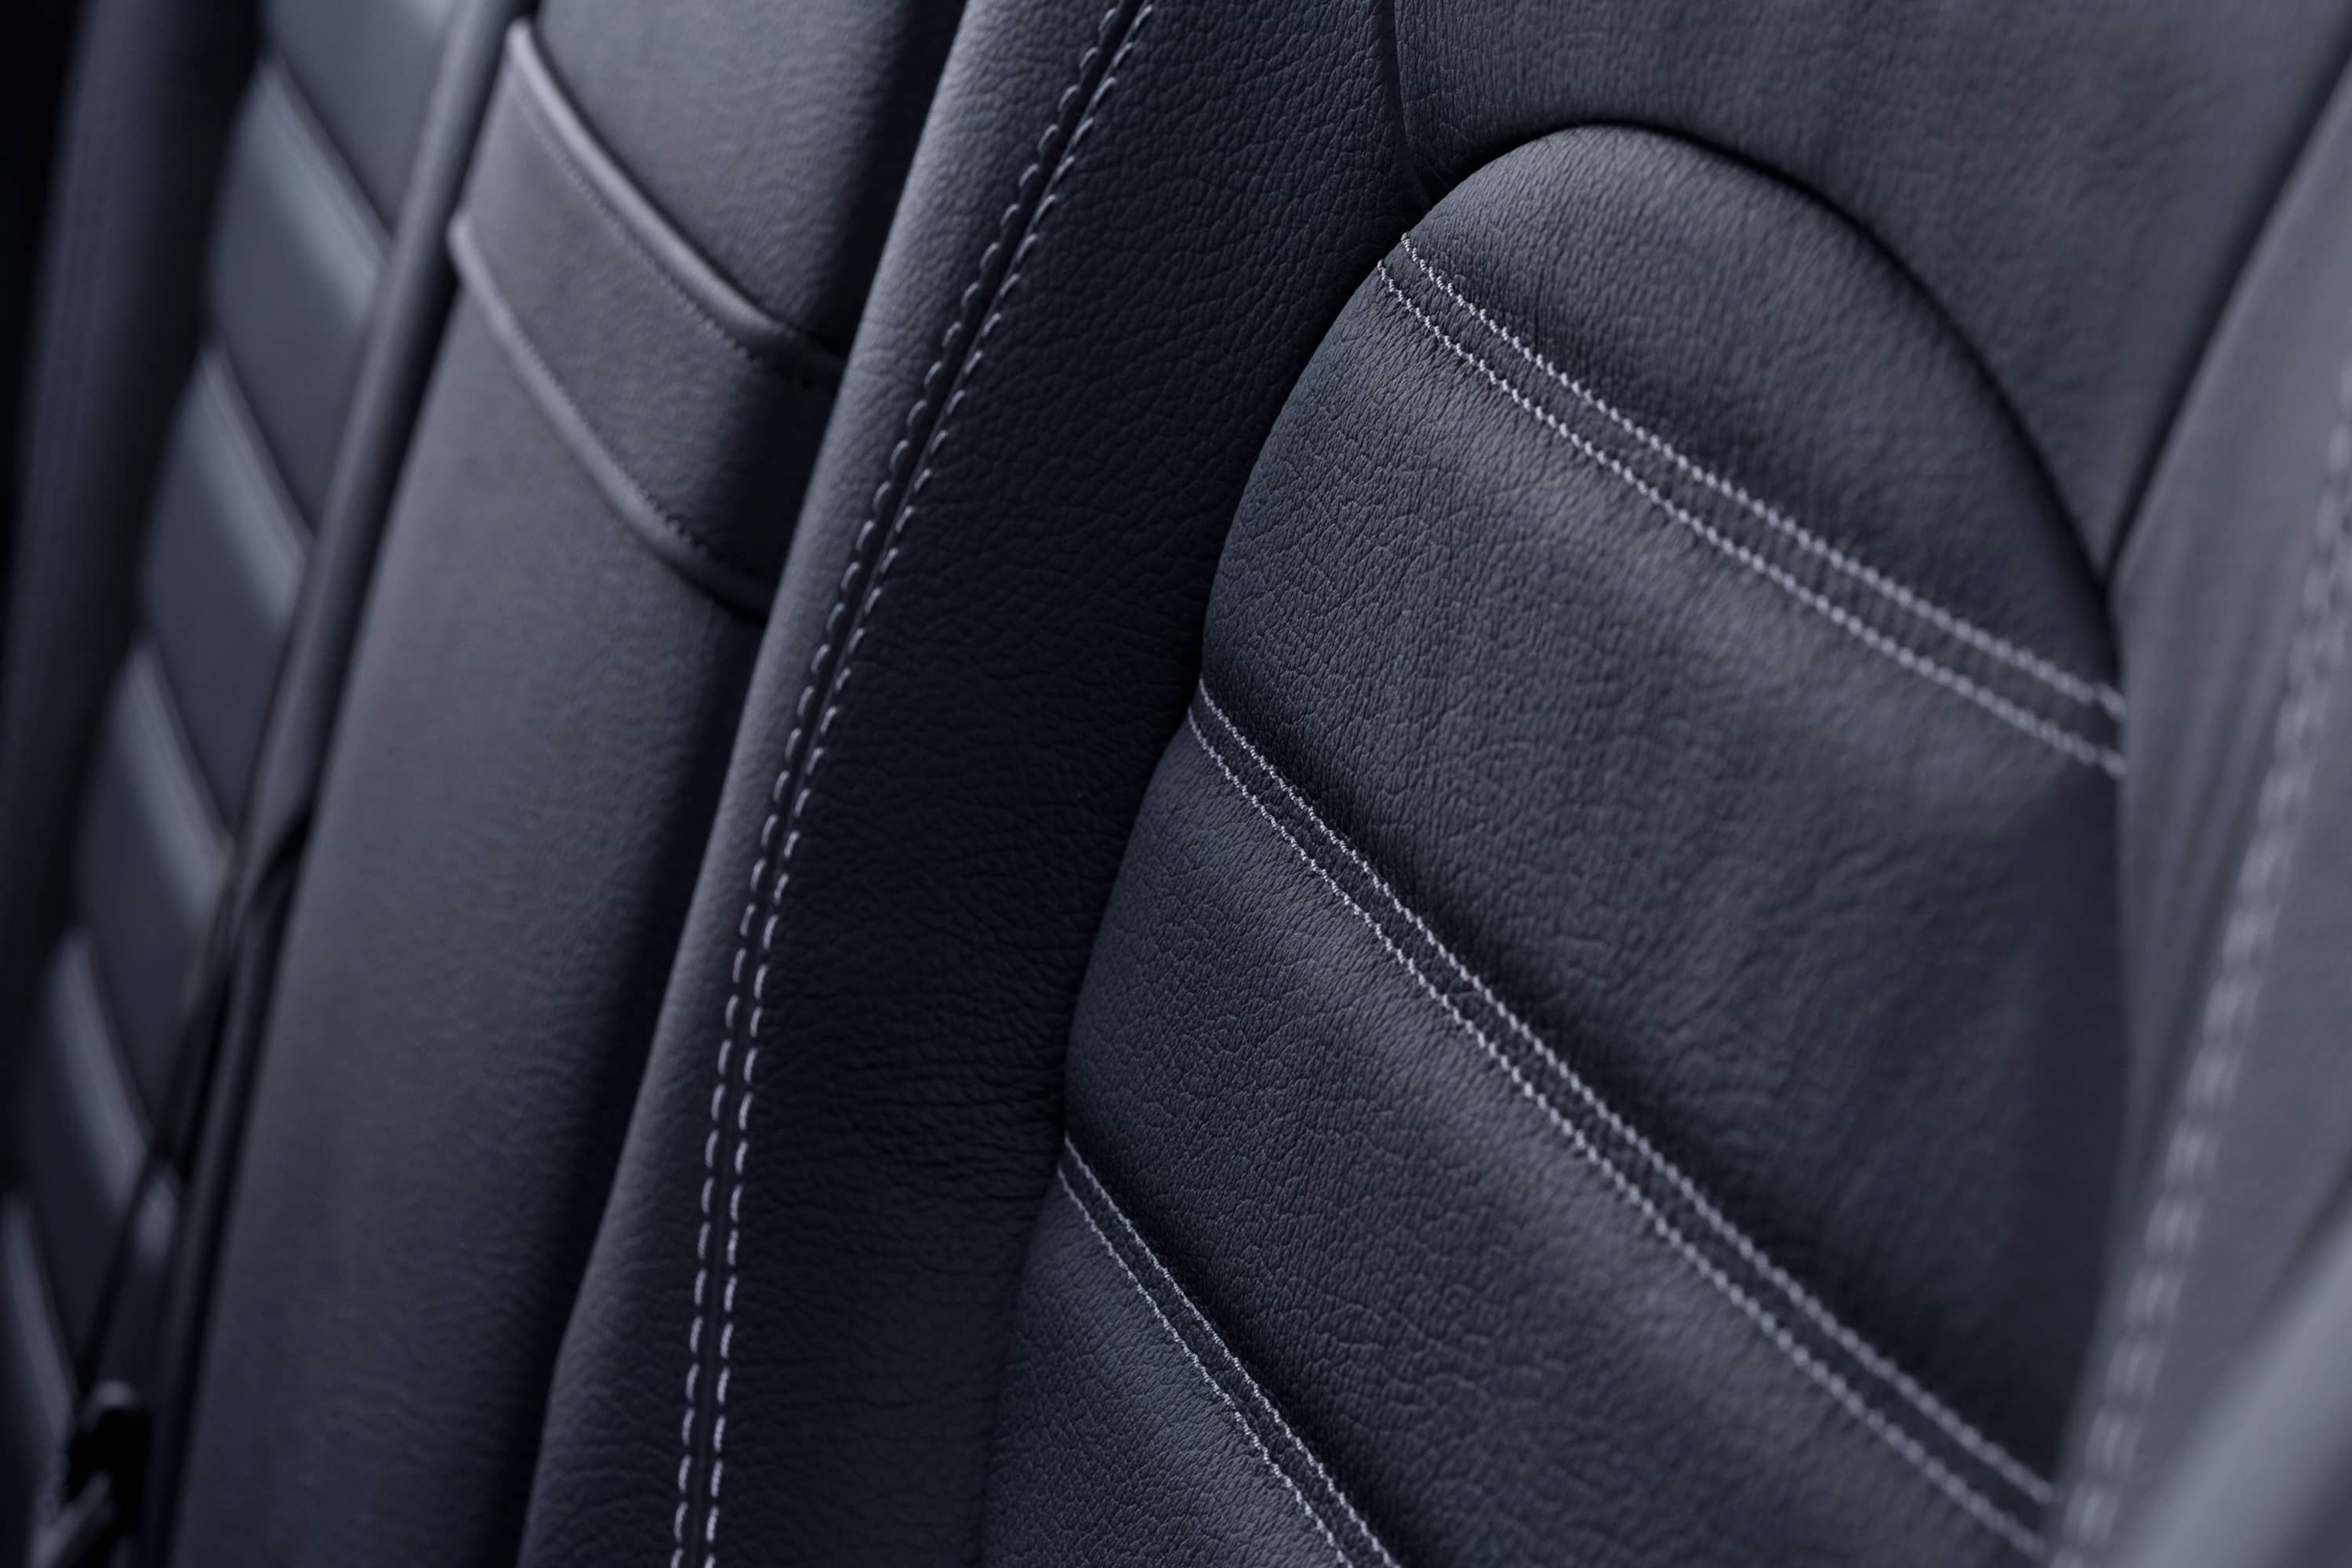 Synthetics for automotive interiors